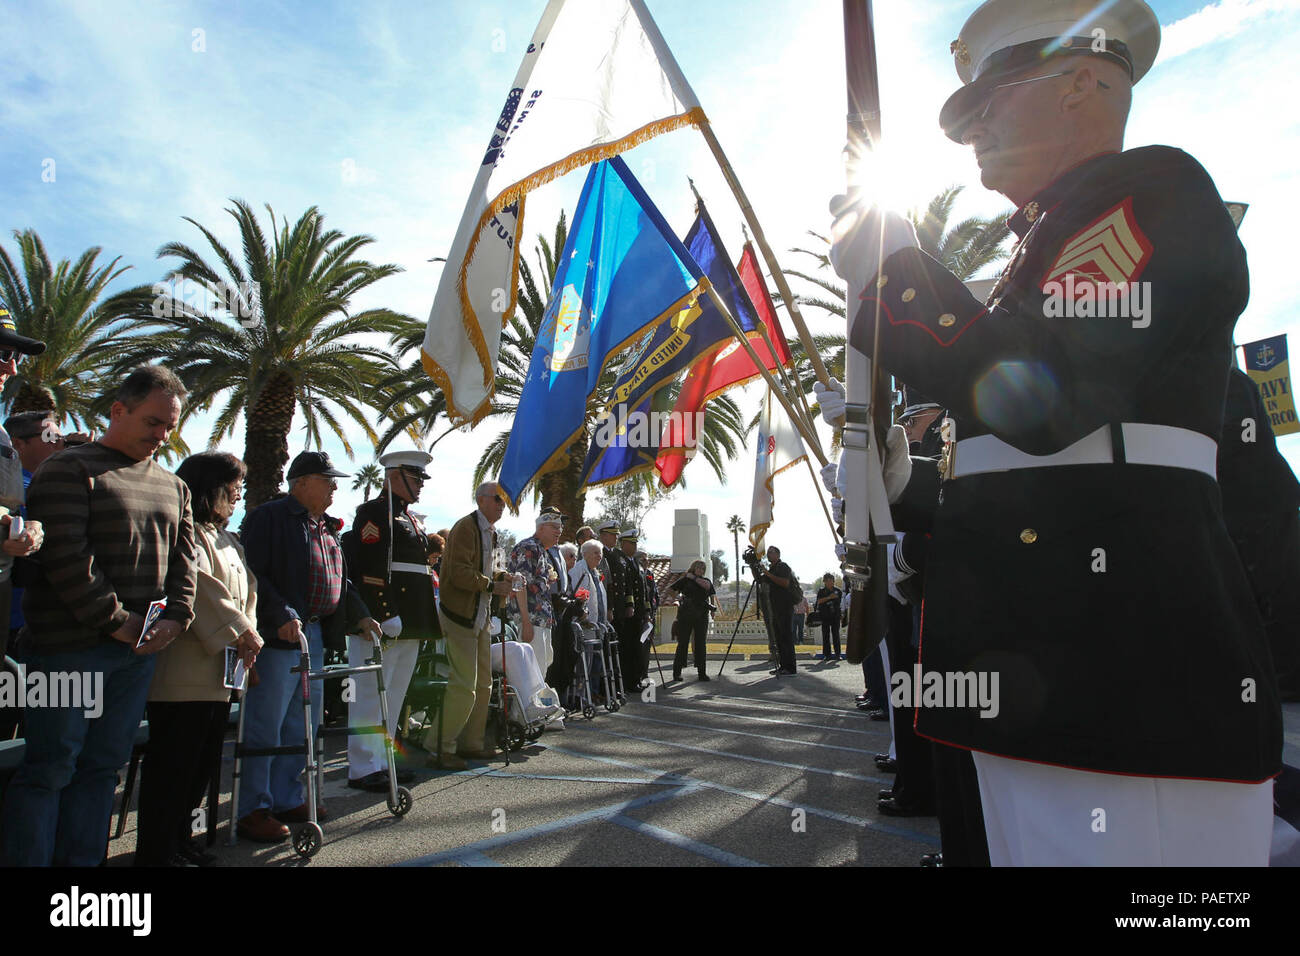 SAN DIEGO, Calif. (Dec. 7, 2015) Riverside National Cemetery All Service Color Guard present colors during 9th Annual Pearl Harbor Remembrance Day at Naval Weapons Station Seal Beach (NWSSB) Detachment Norco, home of Naval Surface Warfare Center (NSWC), Corona Division. Held near the historic Lake Norconian Conference Center, the event marks the 74th anniversary of the Japanese attack on Pearl Harbor and 74 years of Navy presence in Riverside County, first as a naval hospital serving the wounded from Pearl Harbor, and currently as the Navy's independent assessment agent. - Stock Image